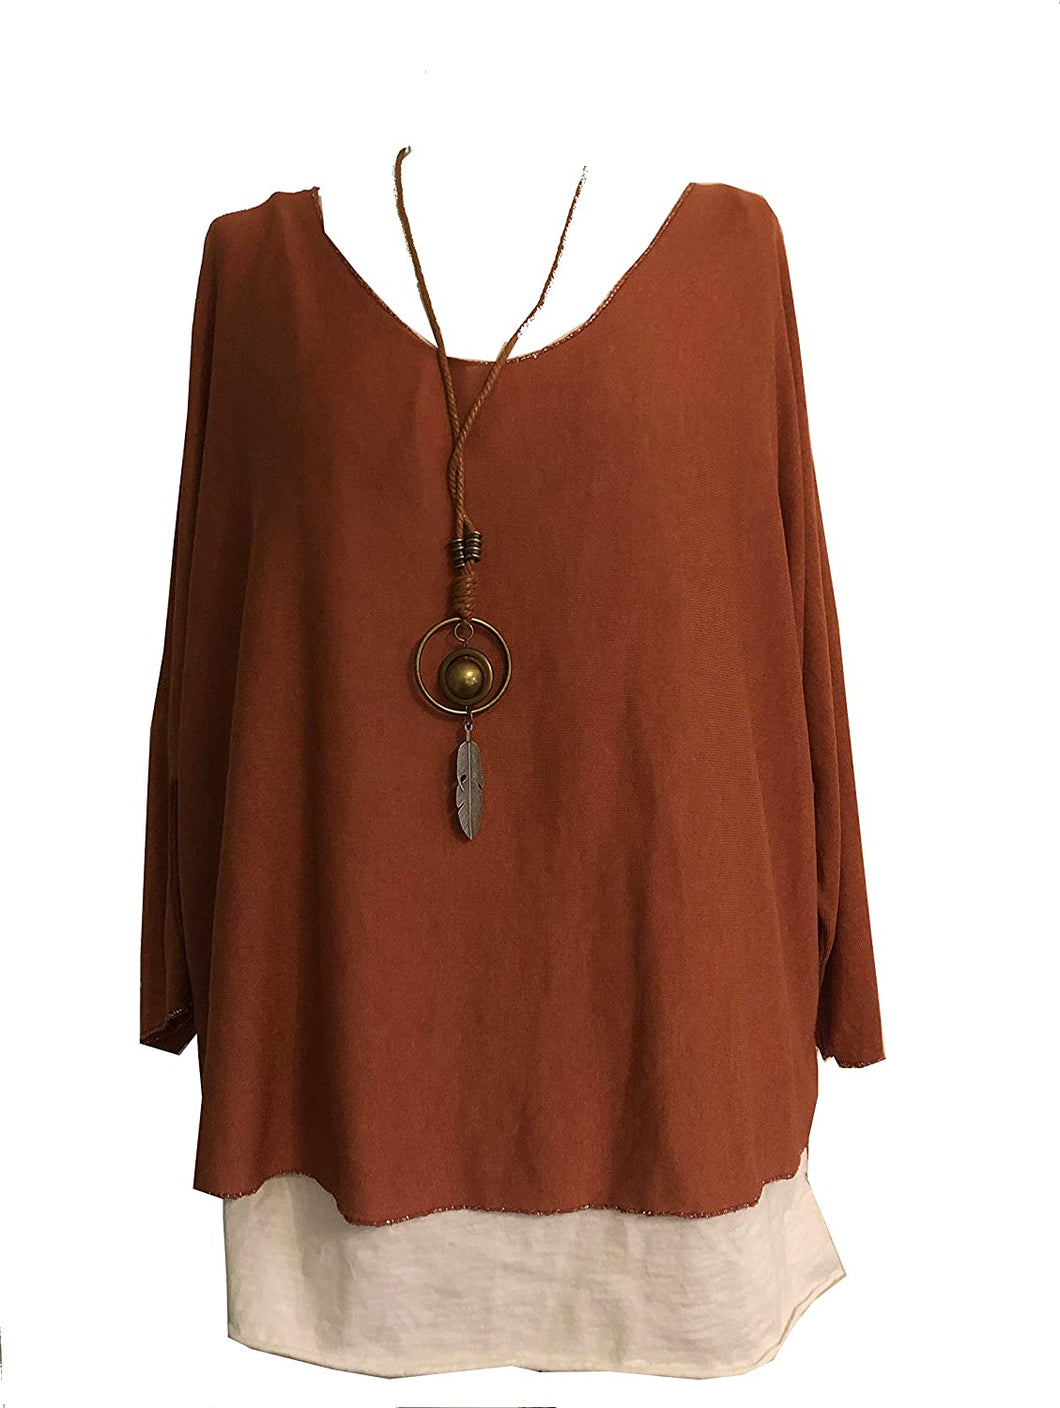 Ladies 2 Piece Layer Plain Top with Necklace with 3/4 Sleeves (A91) - Made in Italy (Rust)